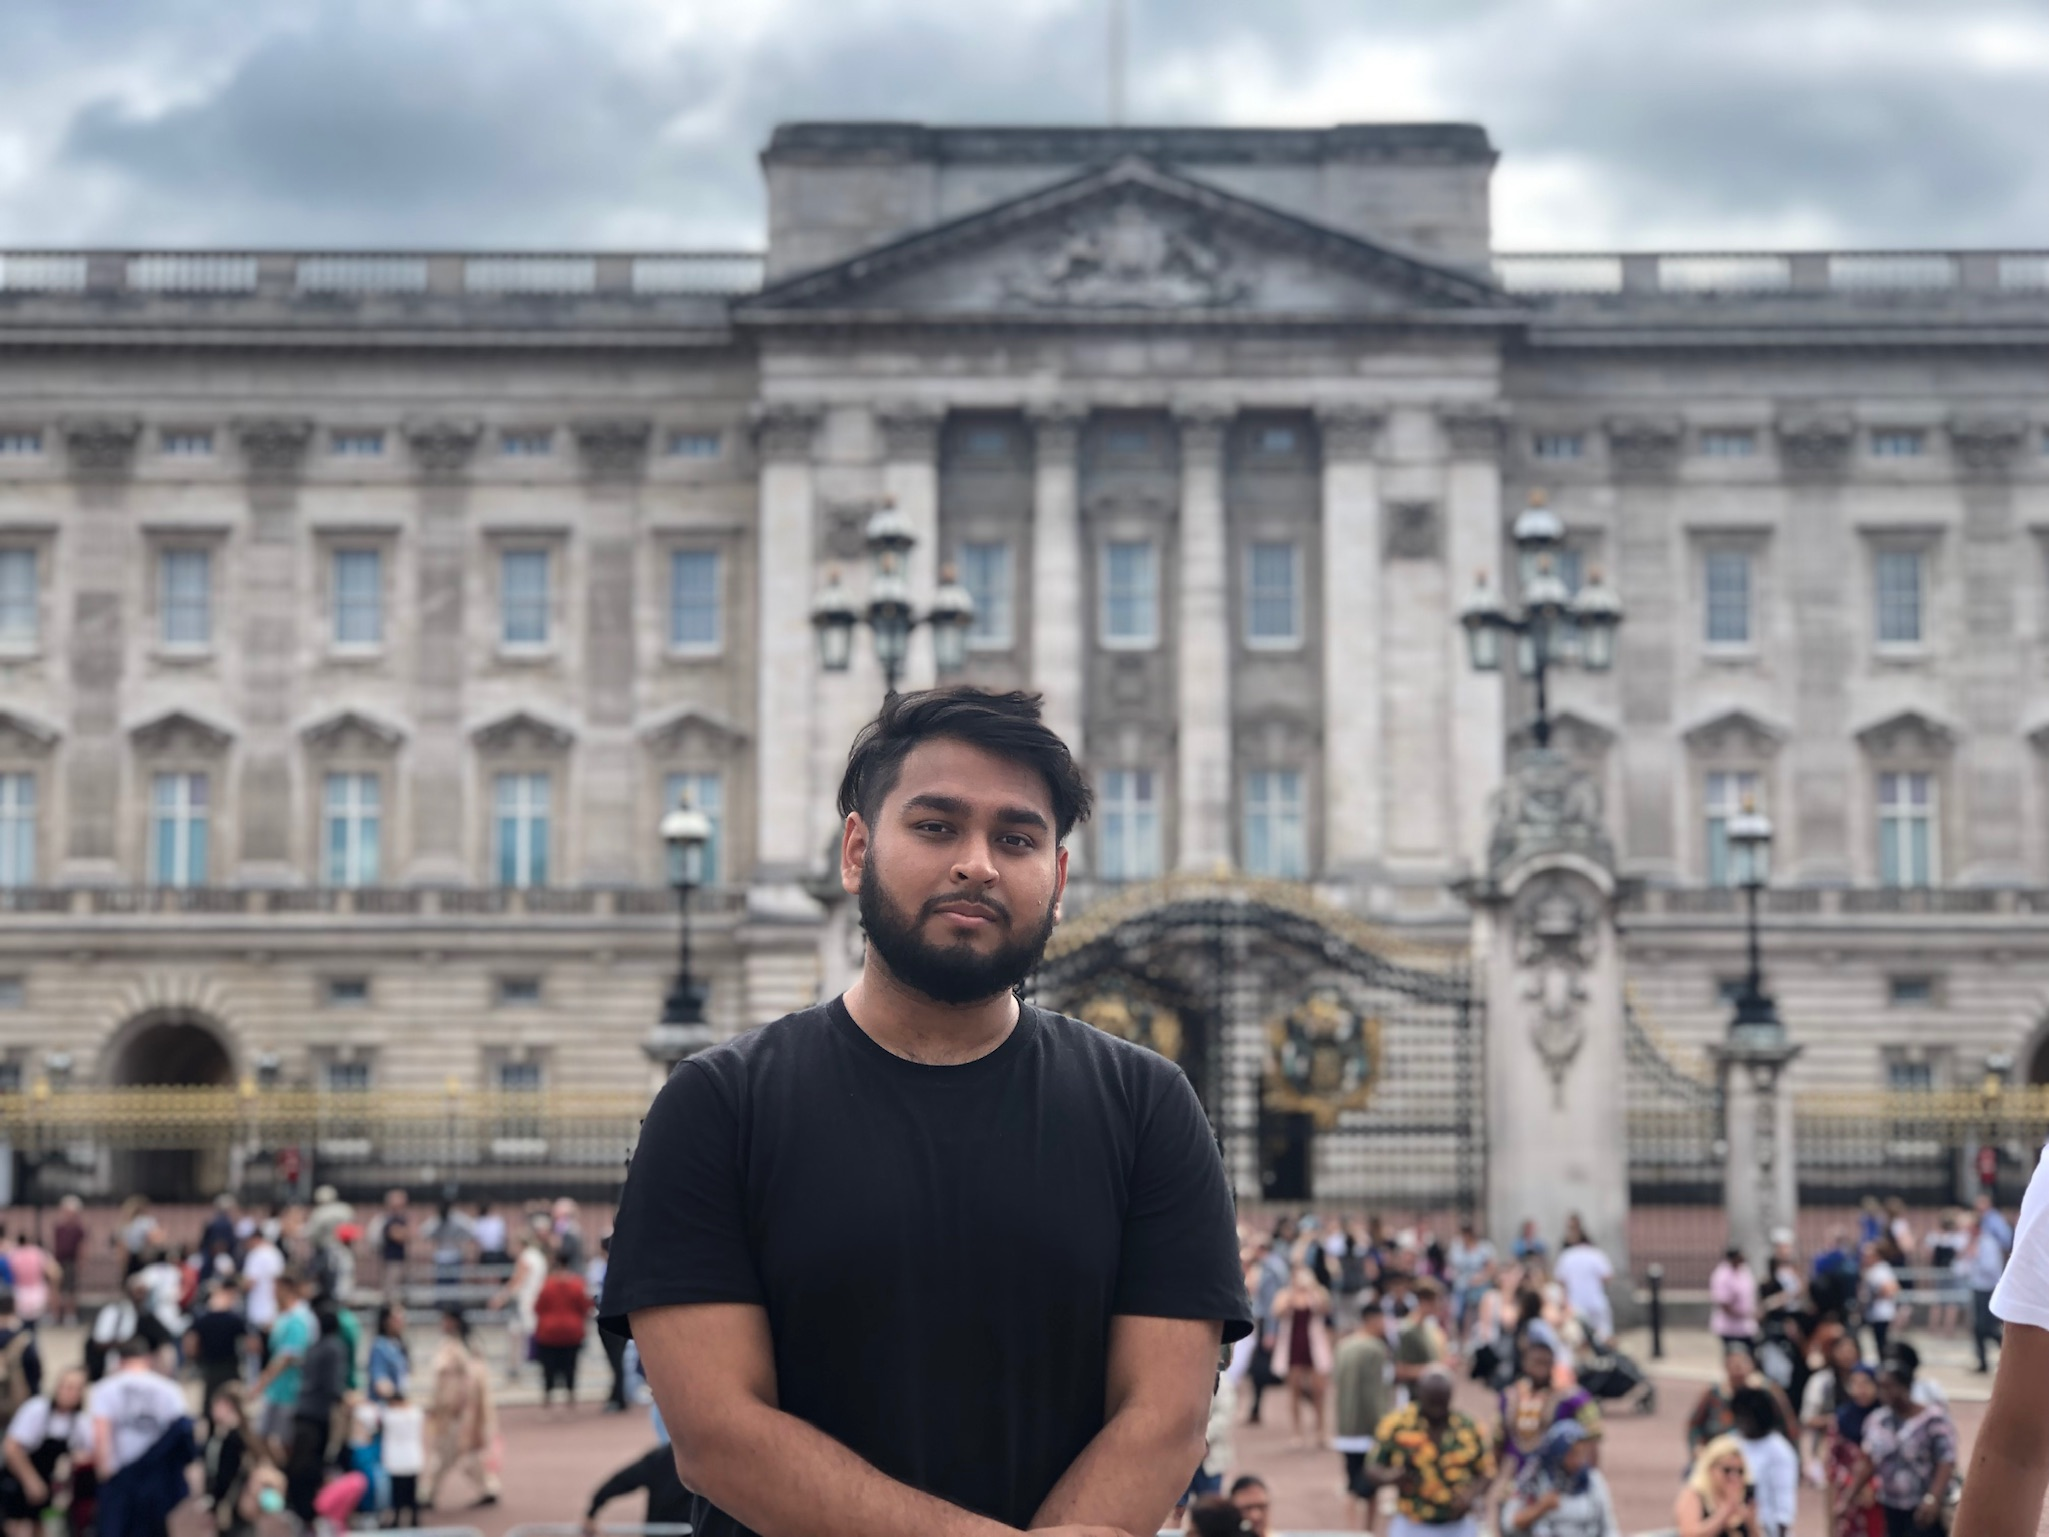 Ohidur Rahman - Hey all! Born and raised in NYC. I love to travel and learn. I'm originally from 6.2 so if you have any questions don't be afraid. IG: @ohidur